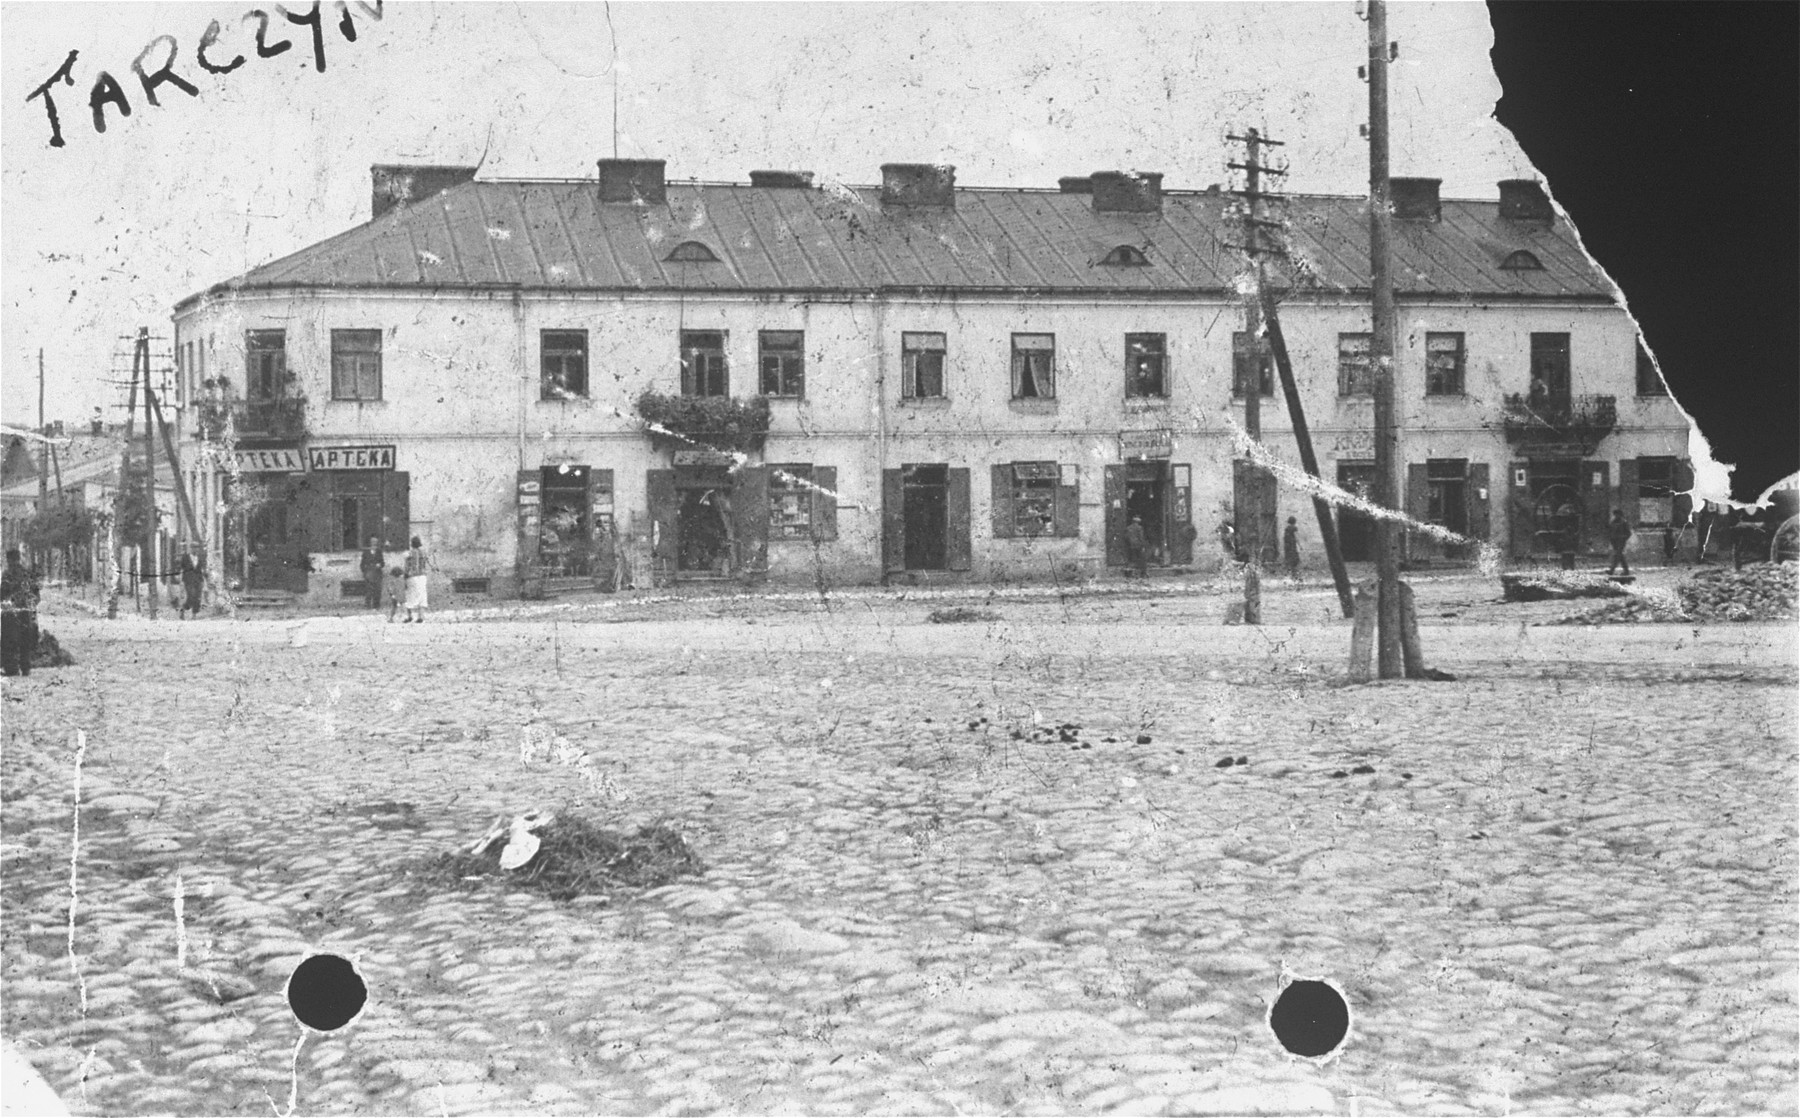 View of a Jewish-owned building in Tarczyn.  The building was the home of Abram Borenstein (the donor's uncle).